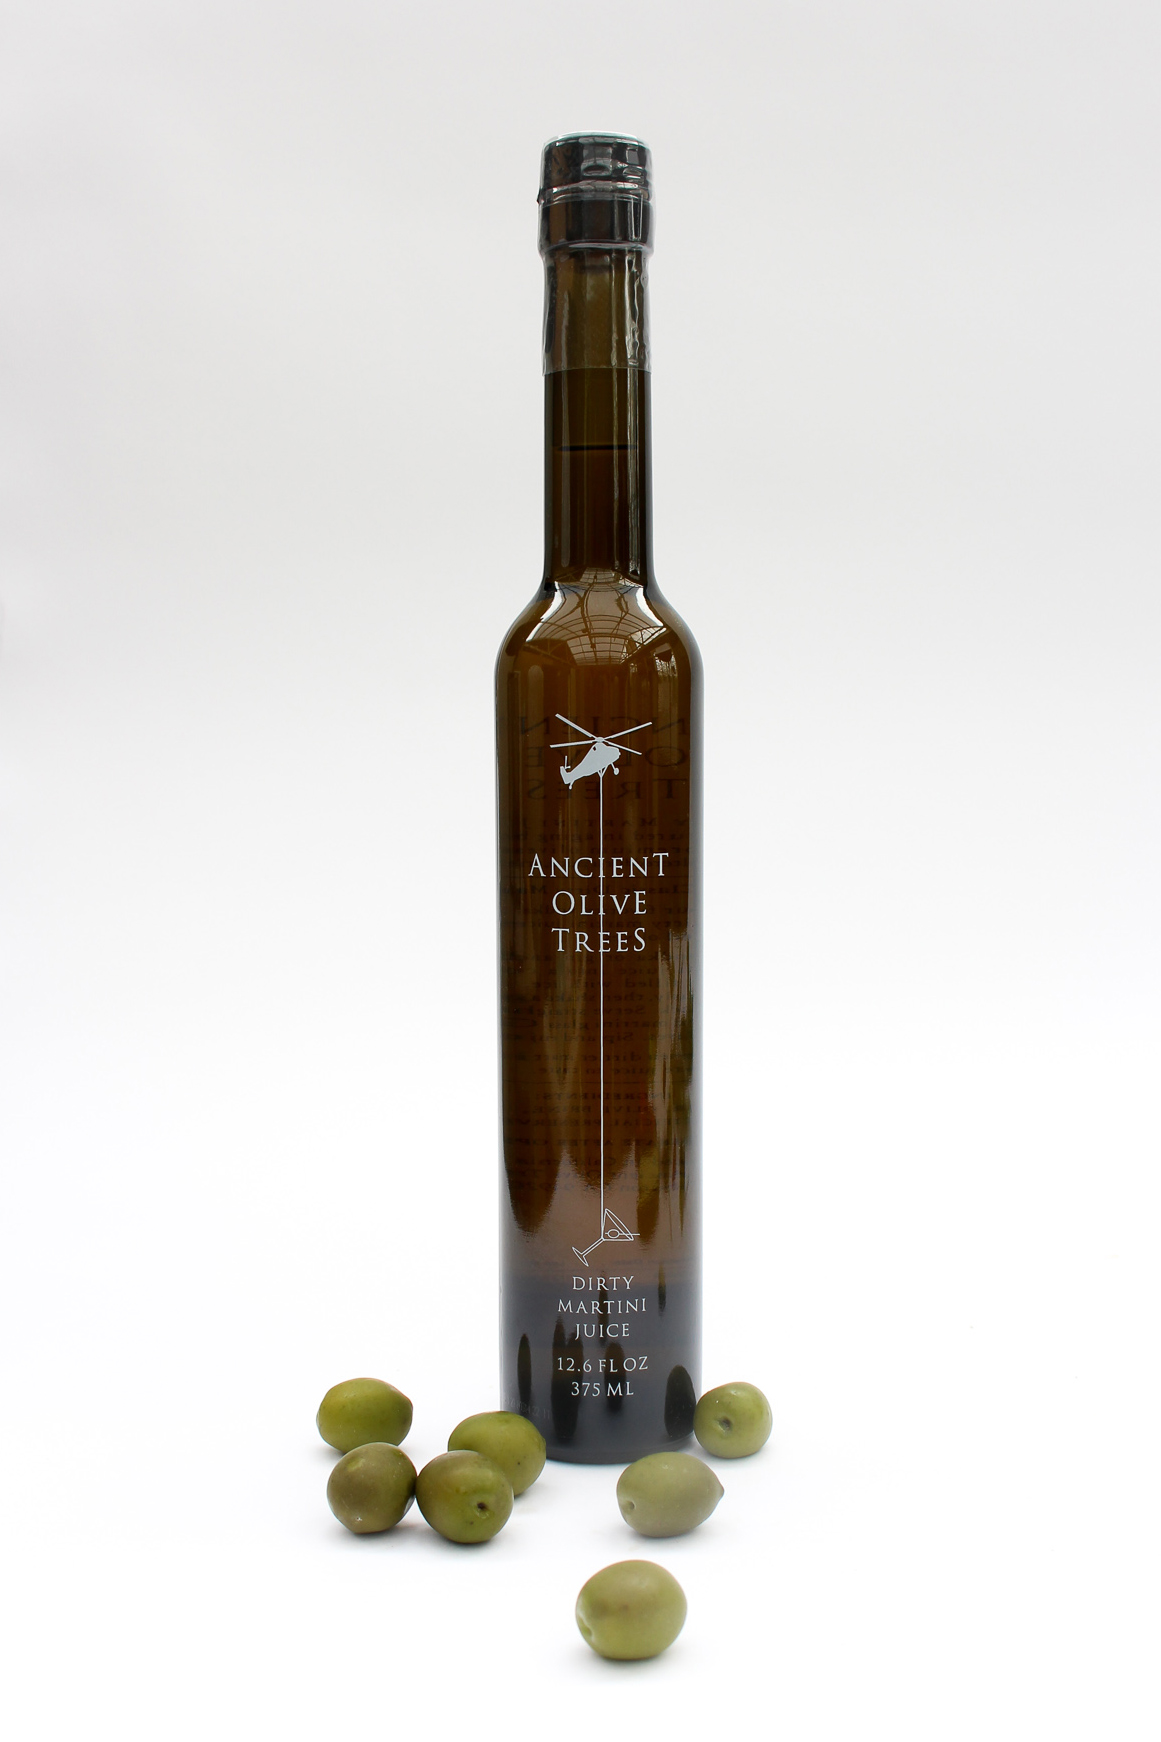 Ancient Olive Trees Dirty Martini Juice